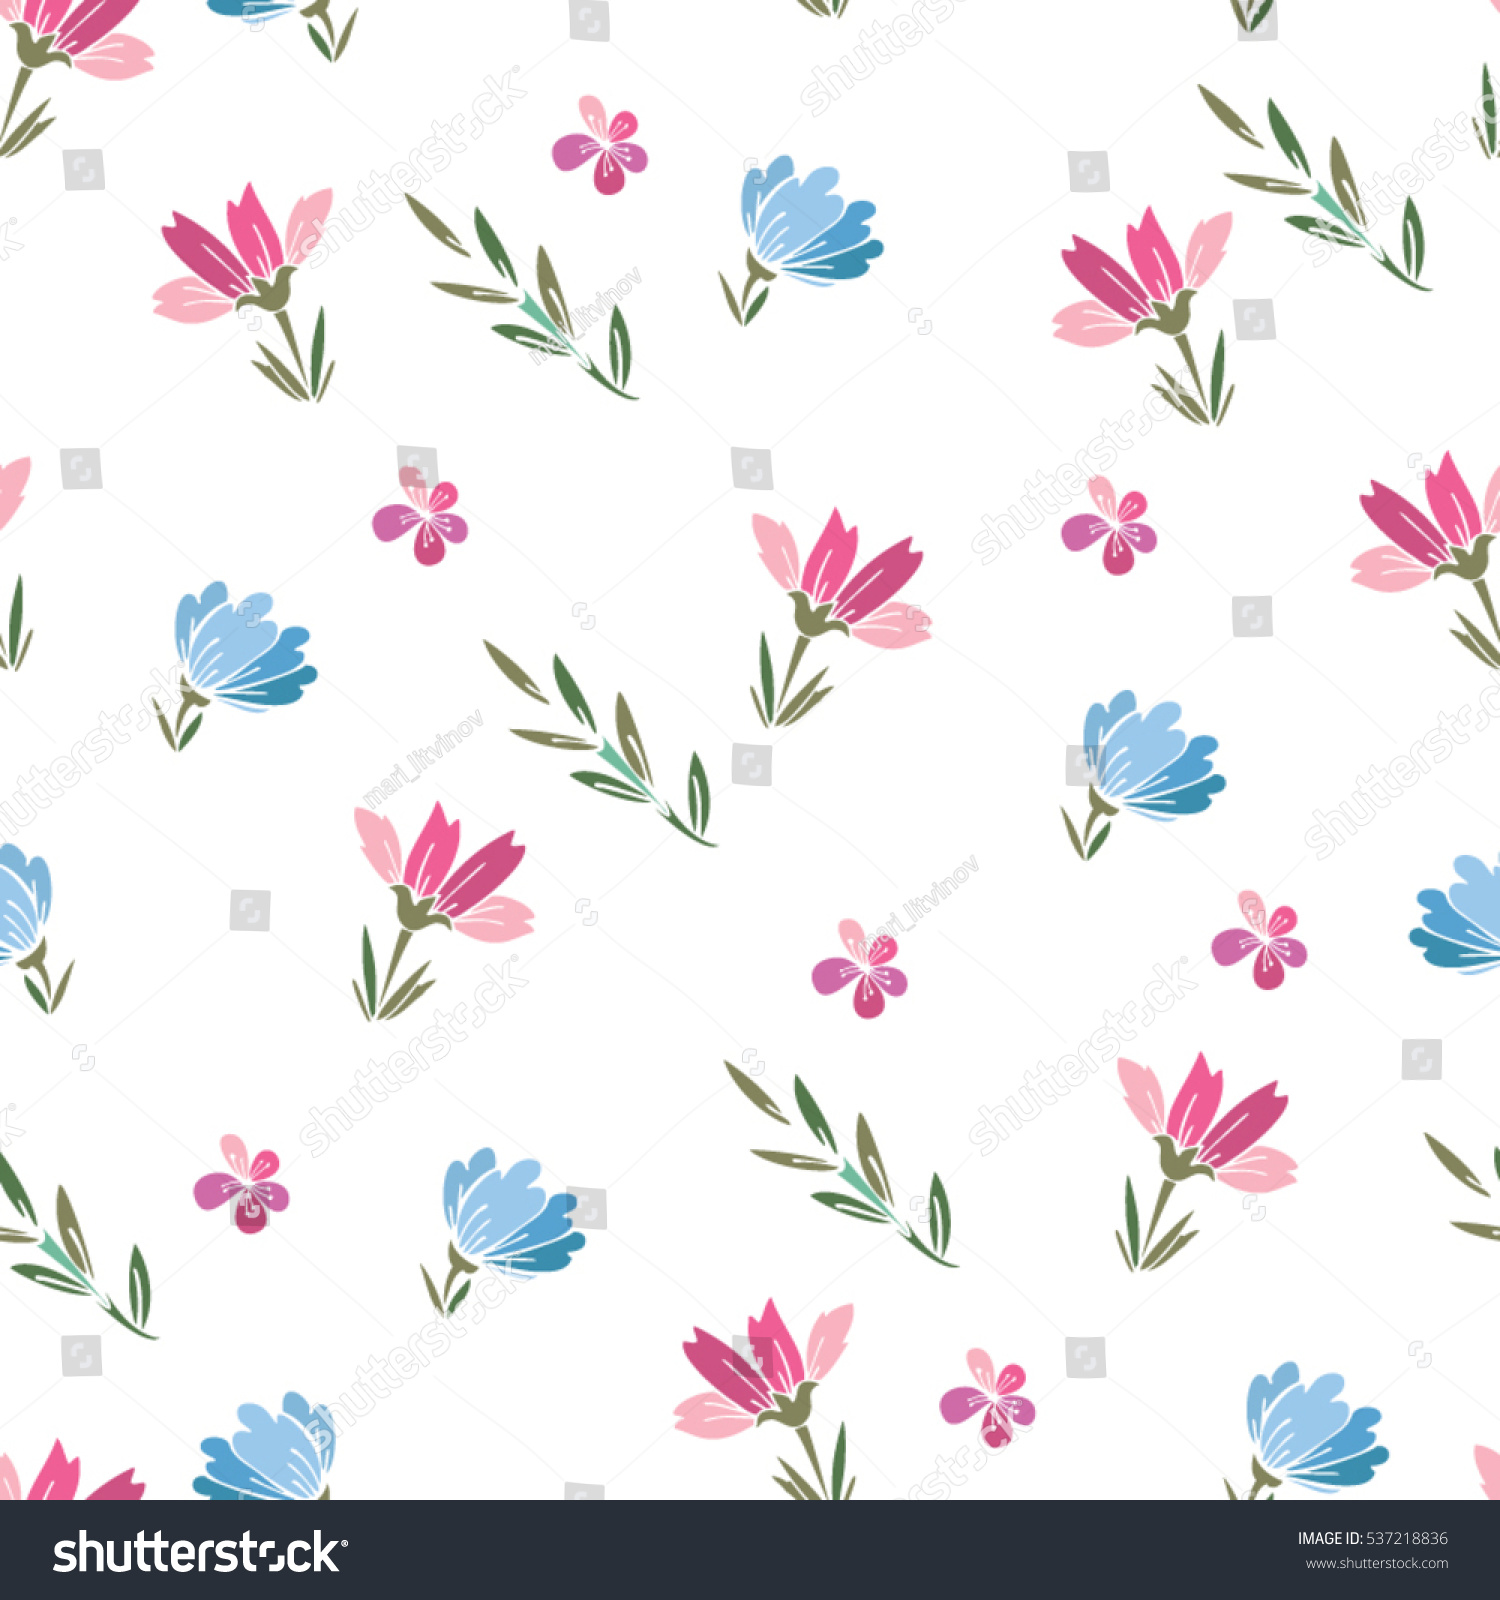 Pink floral seamless vector background floral hrysanthemum seamless - Floral Cute Vector Seamless Pattern Of Small Flowers In Pale Pink And Blue Background For